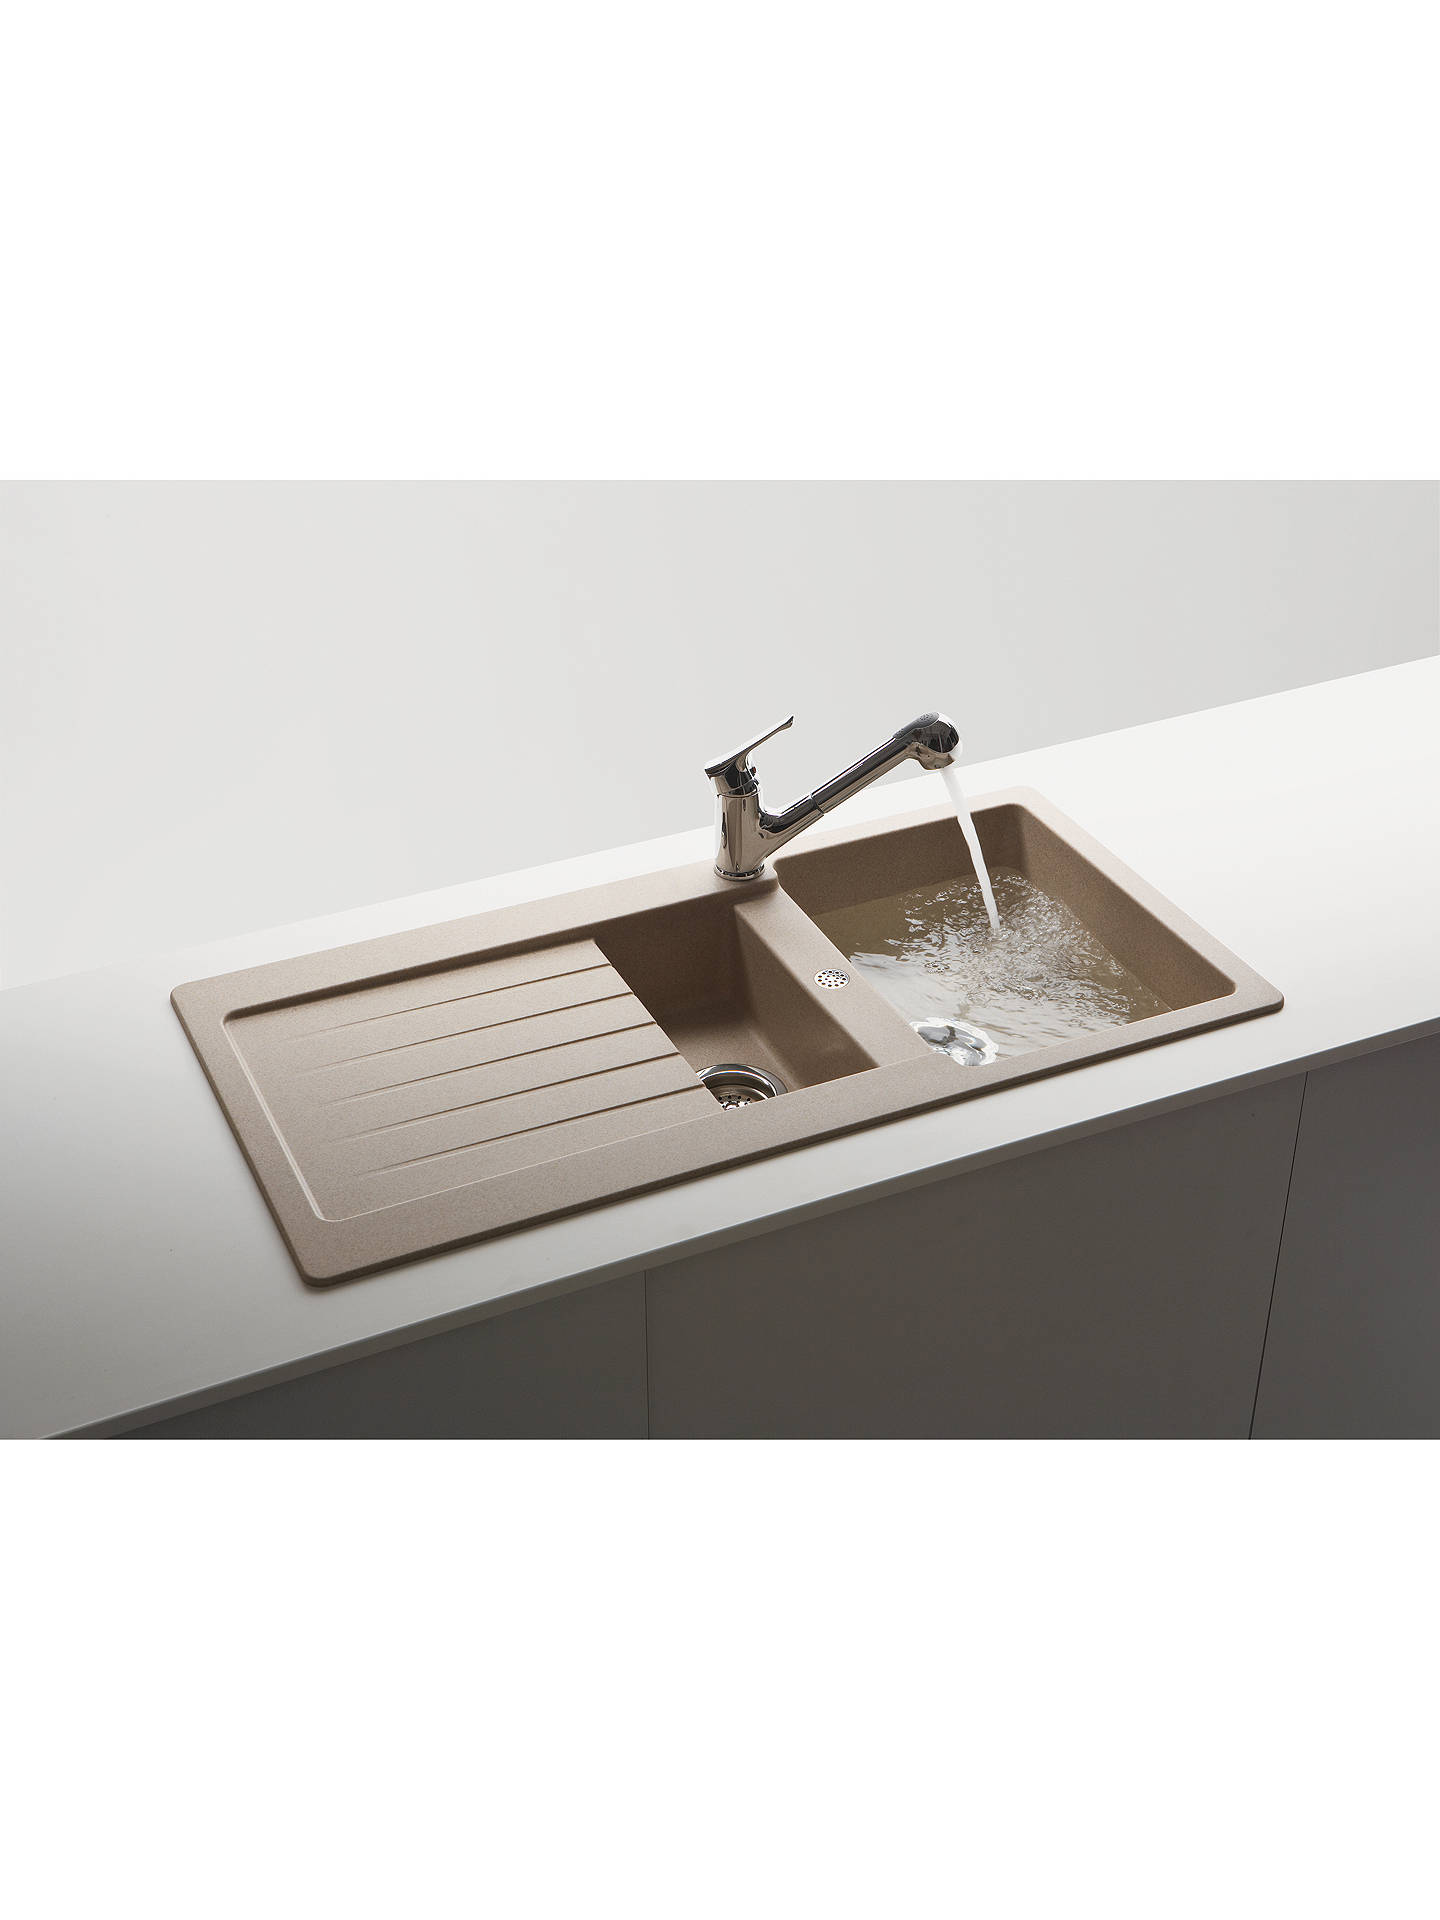 BuySchock Typos 1.5 Bowl Kitchen Sink, Croma Online at johnlewis.com